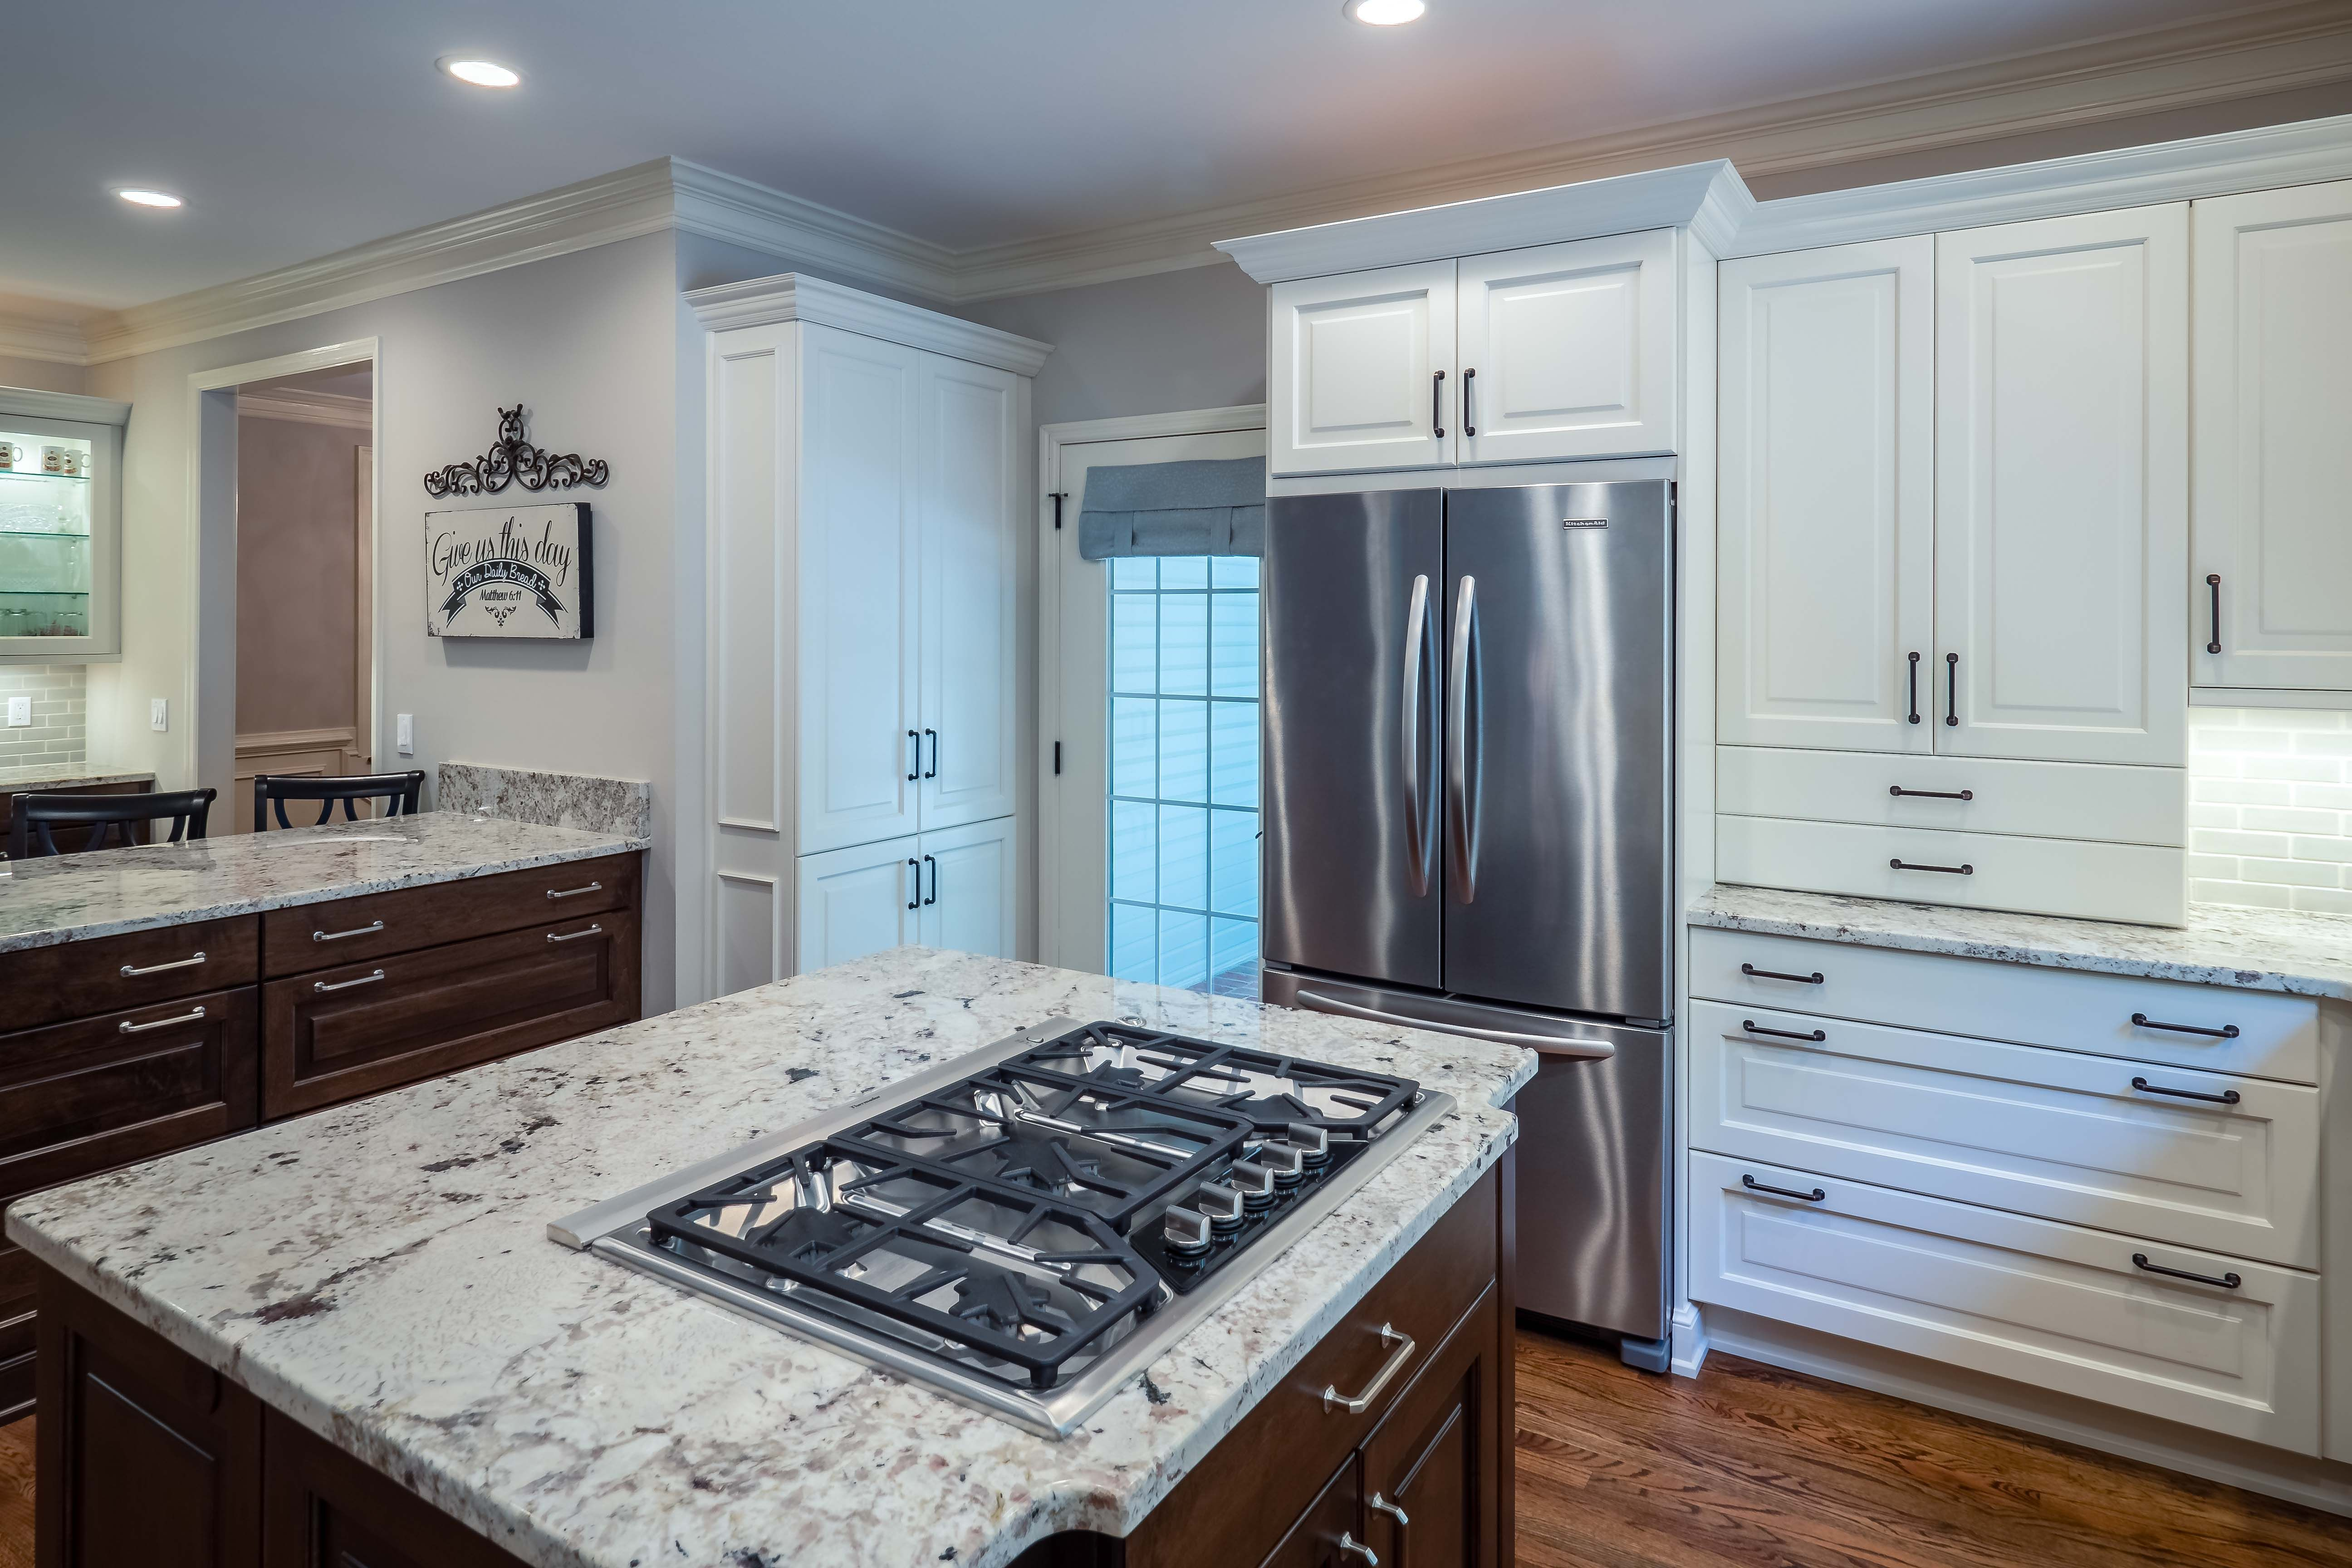 Woodmode Custom Kitchen Cabinetry in Alpine white on Maple and Dark ...